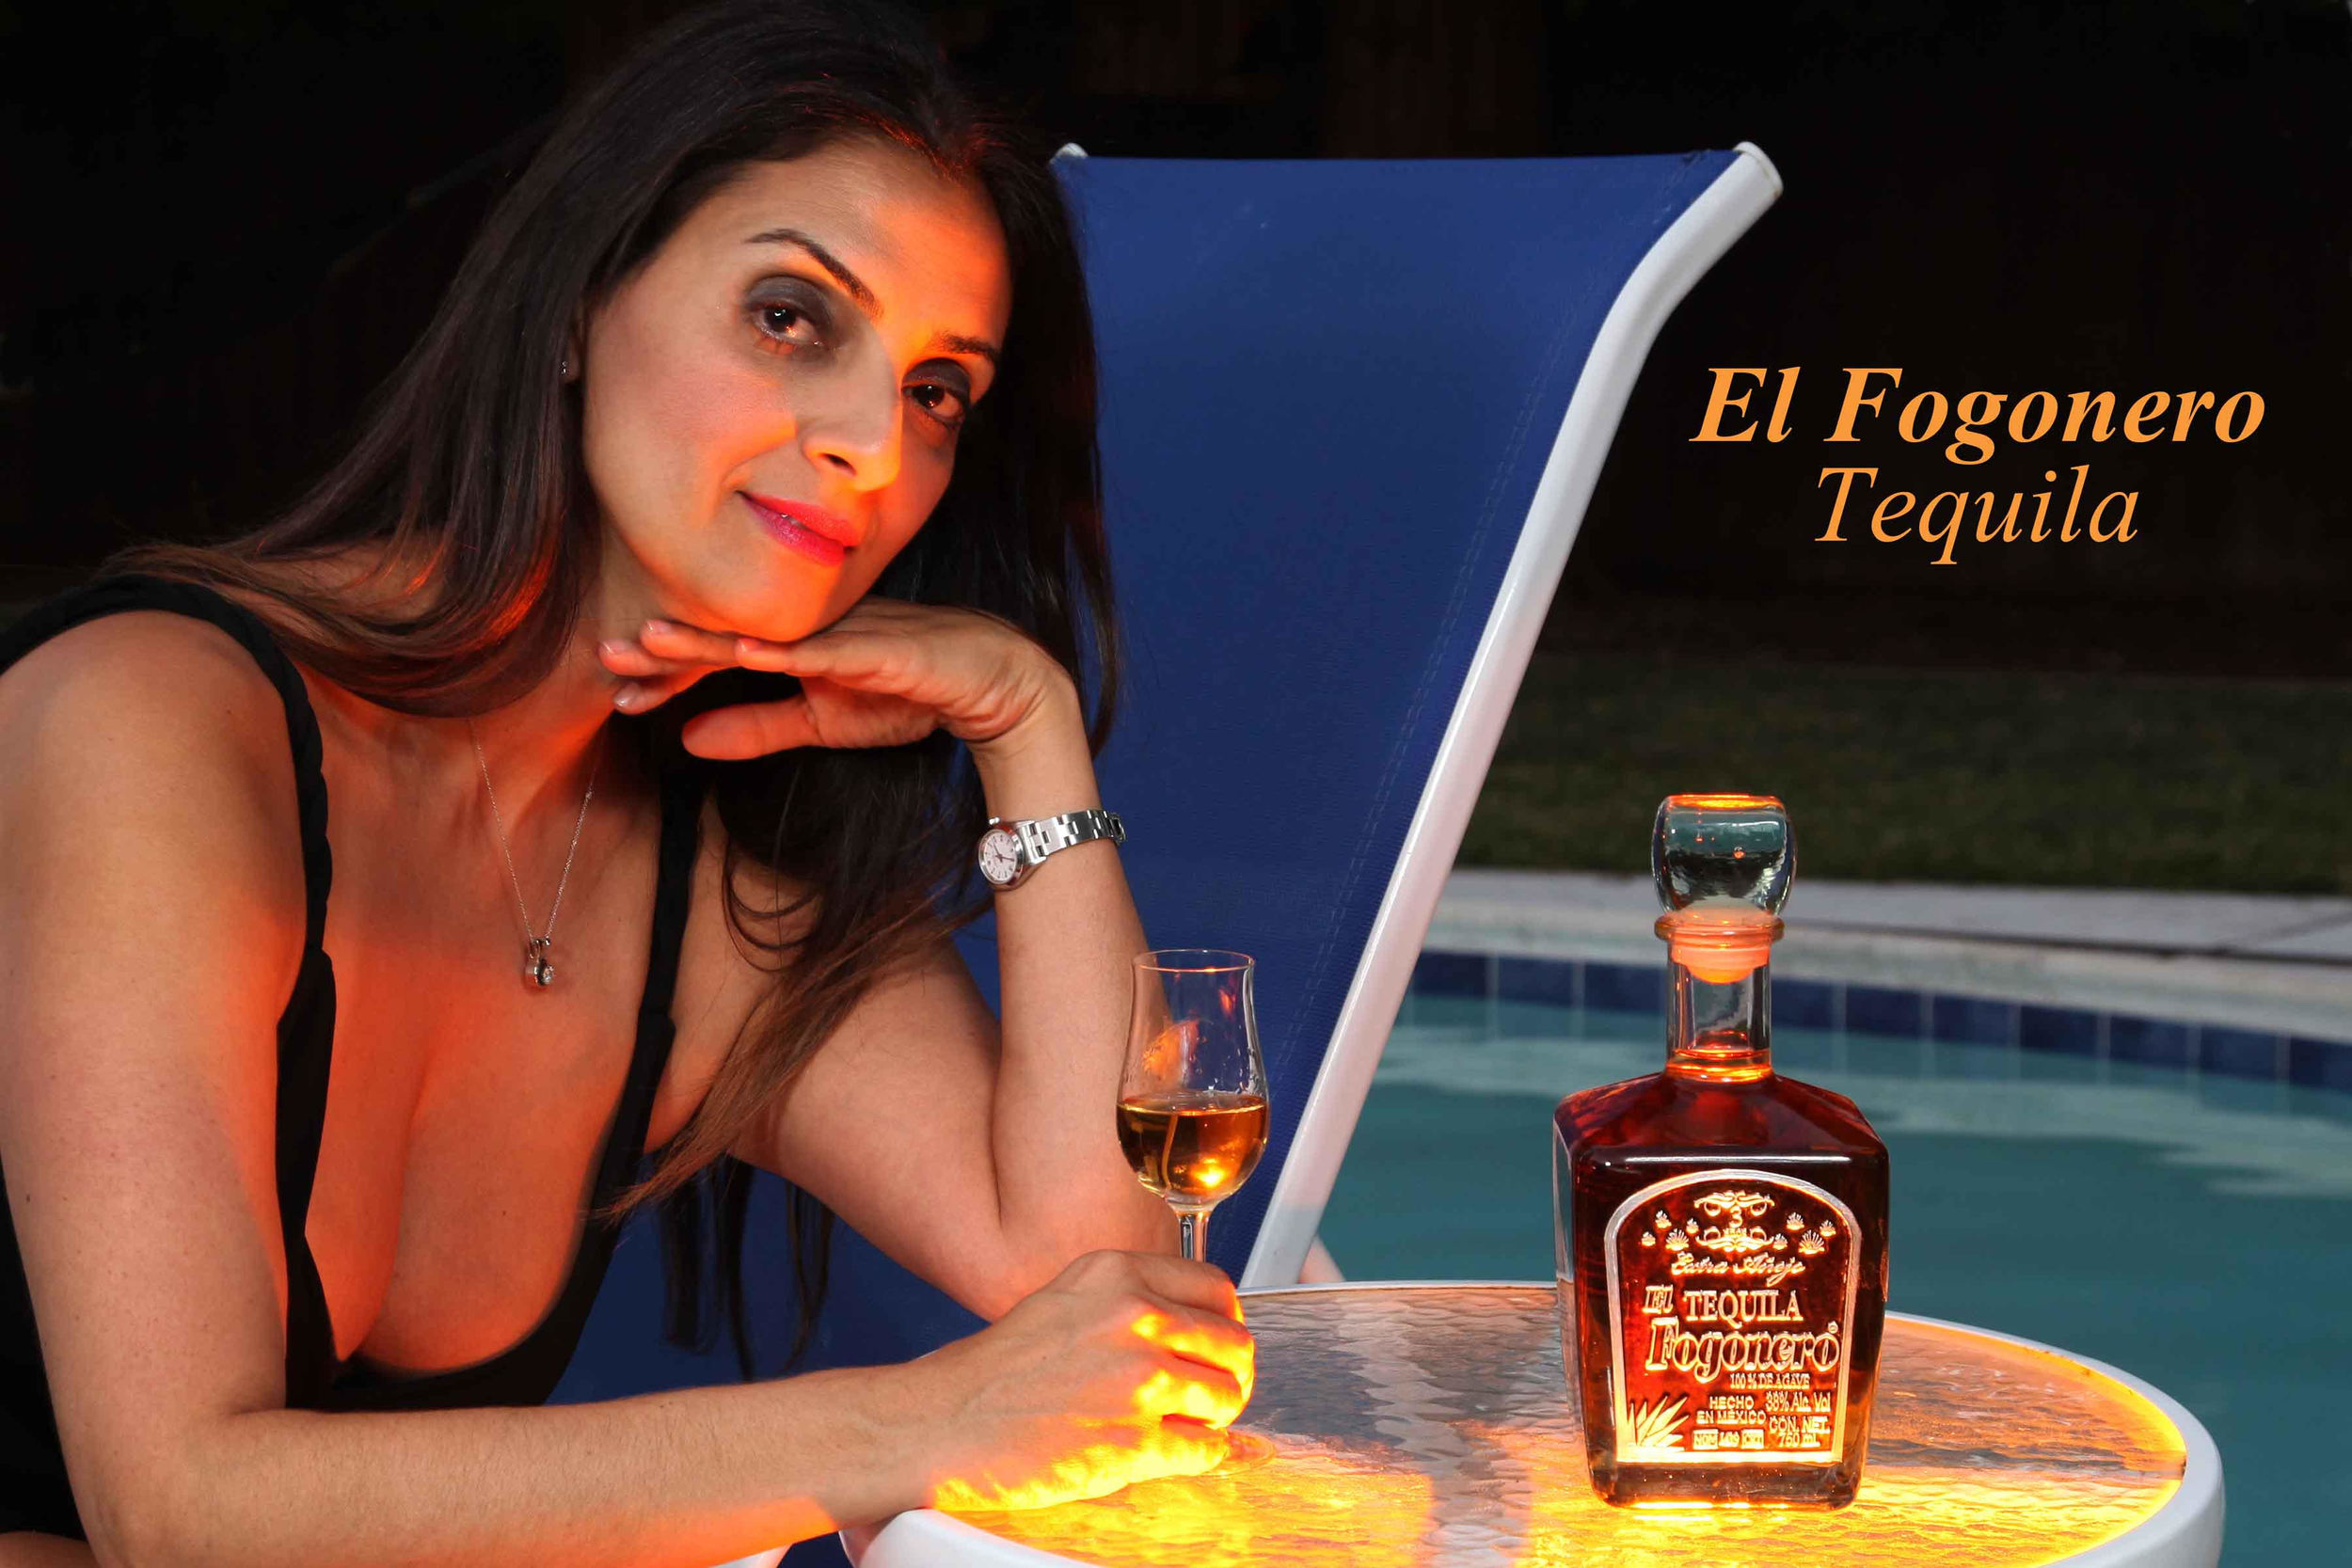 El Fogonero is a small family run distillery located in Amatitan, in the Lowlands of Jalisco. The family performs all stages of the production process including the making and labeling of bottles, as they have been producing high-end tequila for over 4 generations!